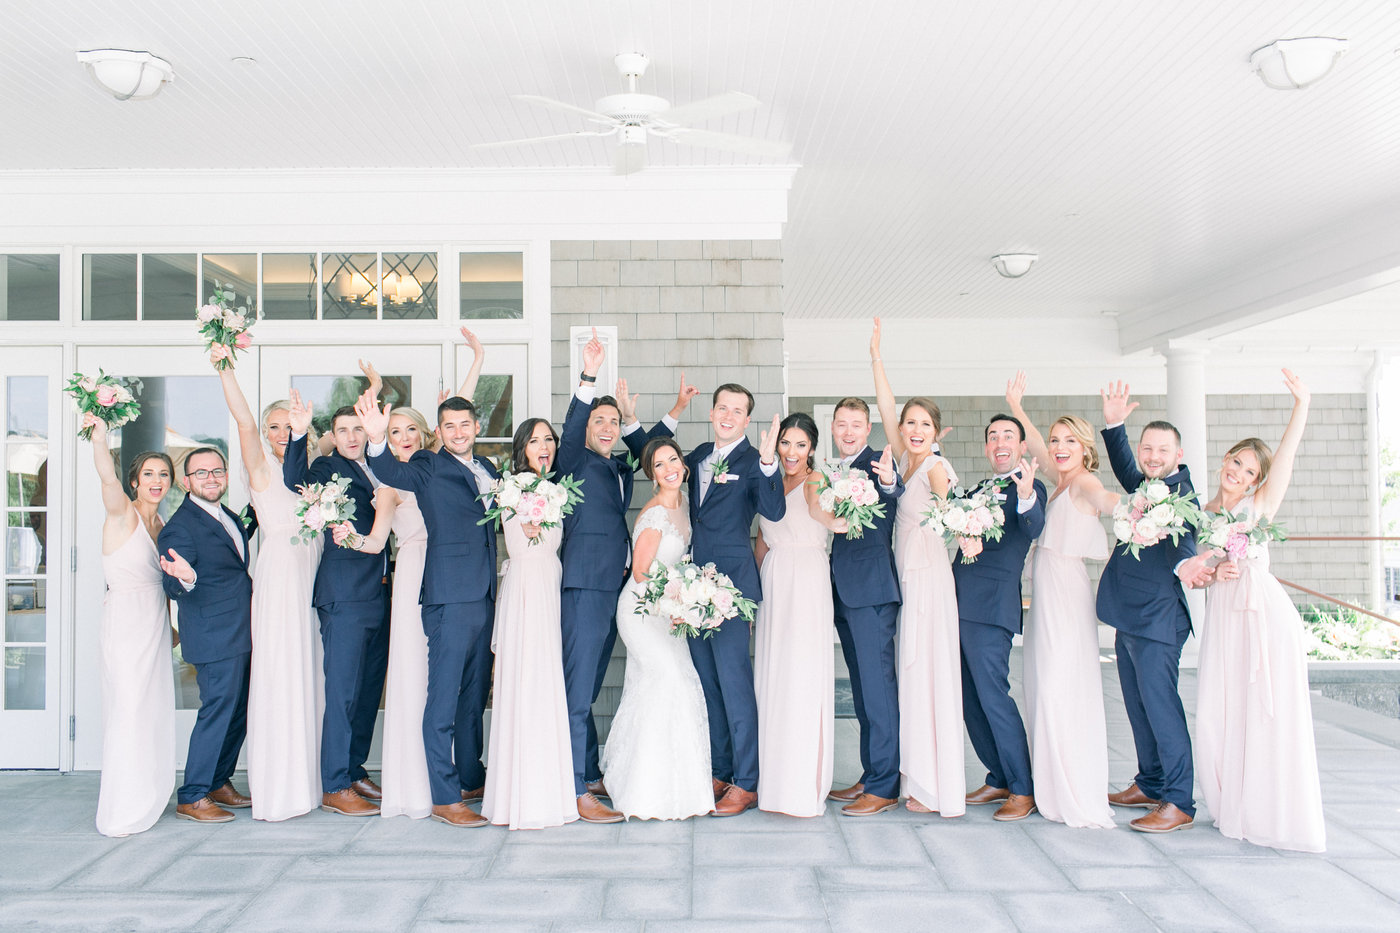 Shorehaven Golf Club wedding bridal party brideamaids groomsmen bouquets blush navy roses peonies.jpg